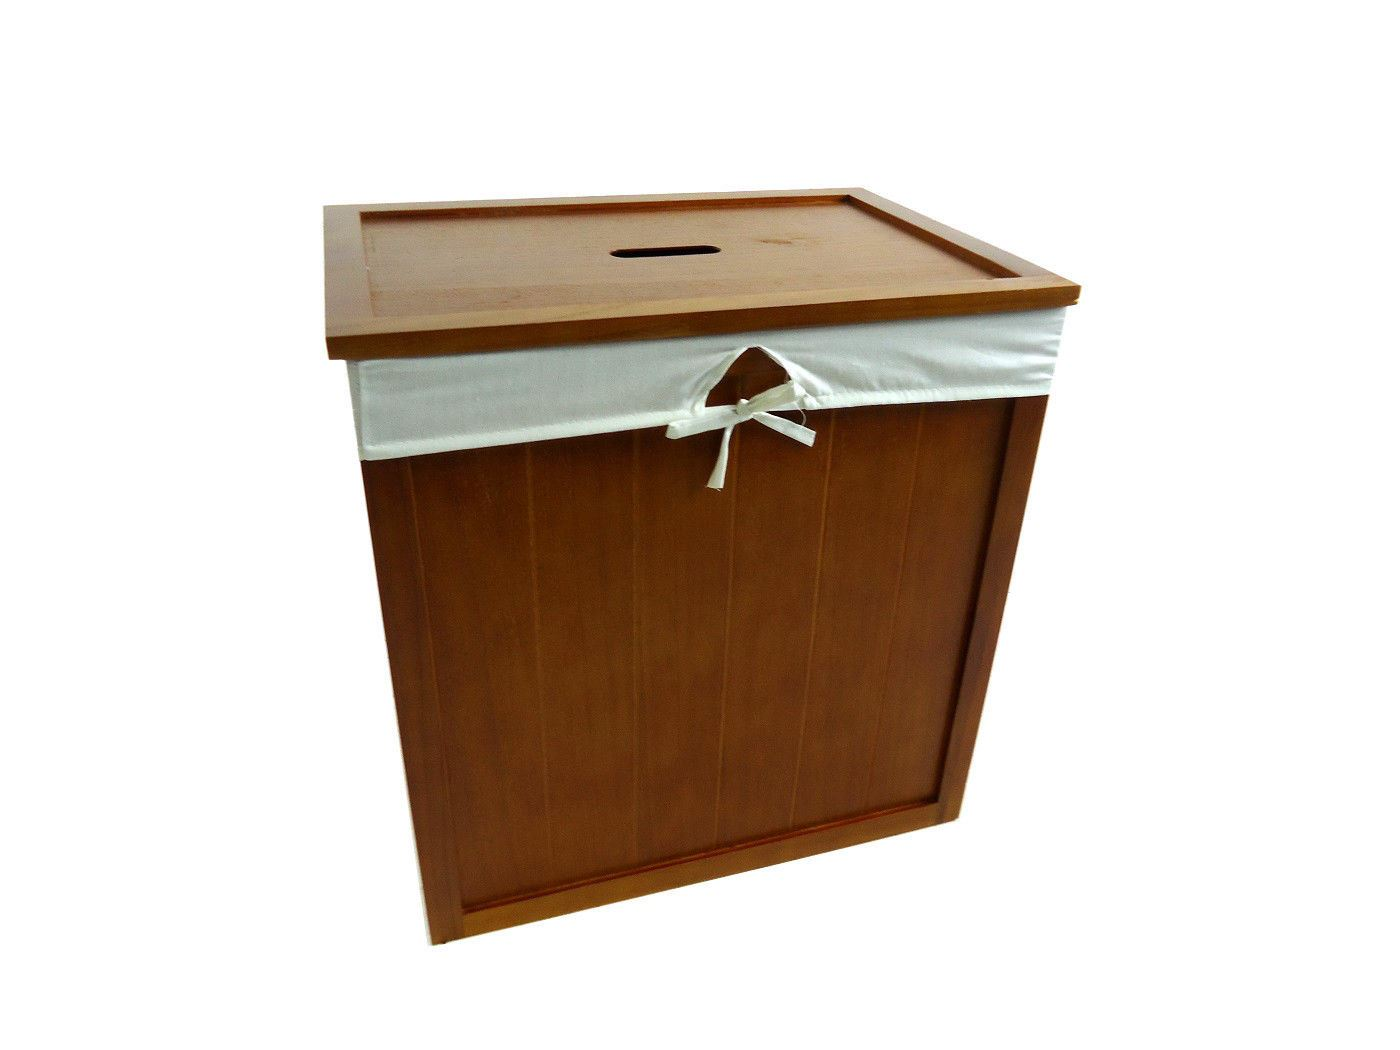 White Laundry Hamper With Lid Wooden Brown White Kids Playroom Toy Box Chest Bathroom